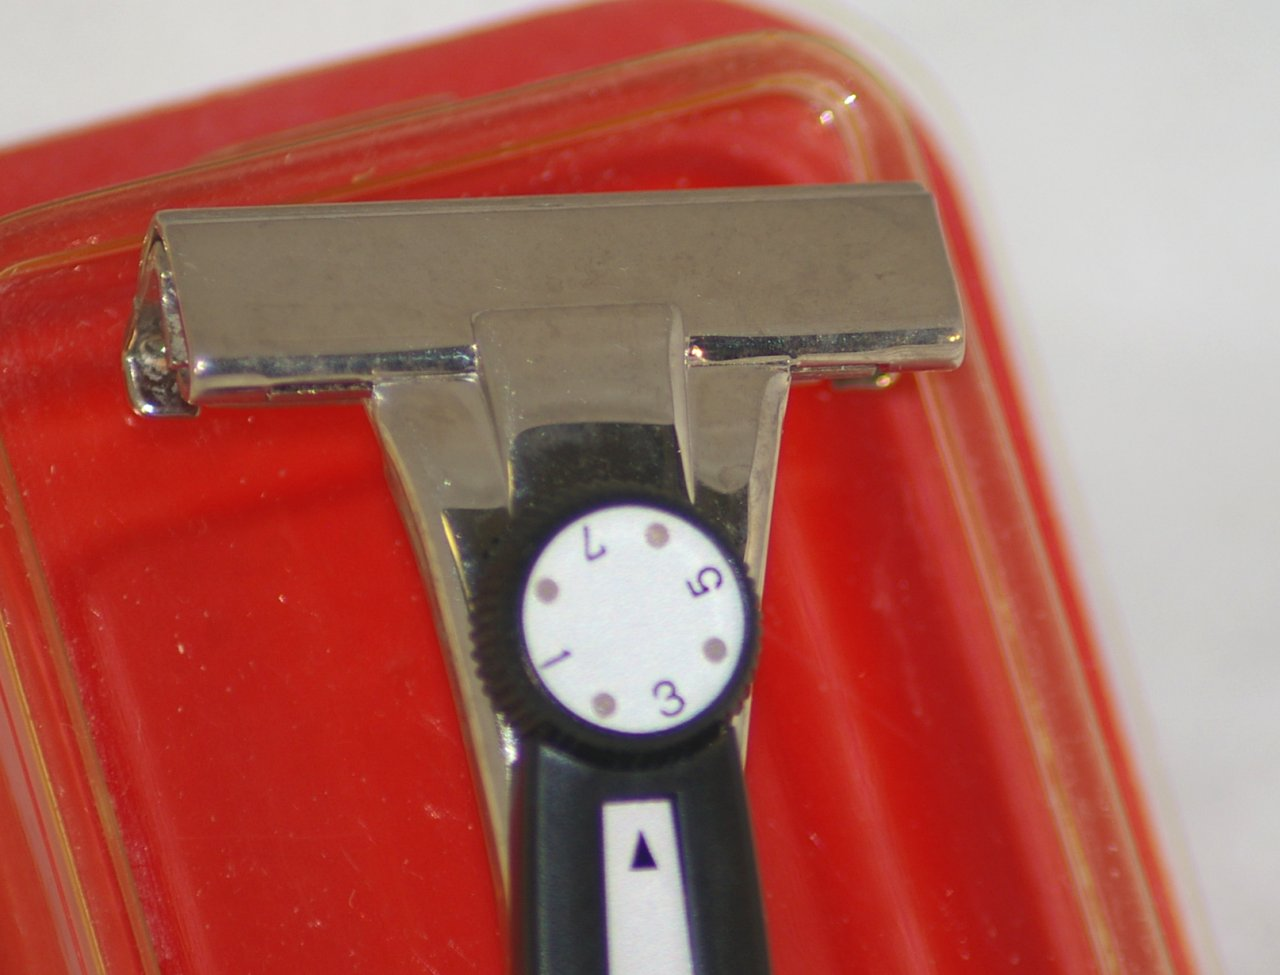 Schick Adjustable Injector Razor M1, about 1966